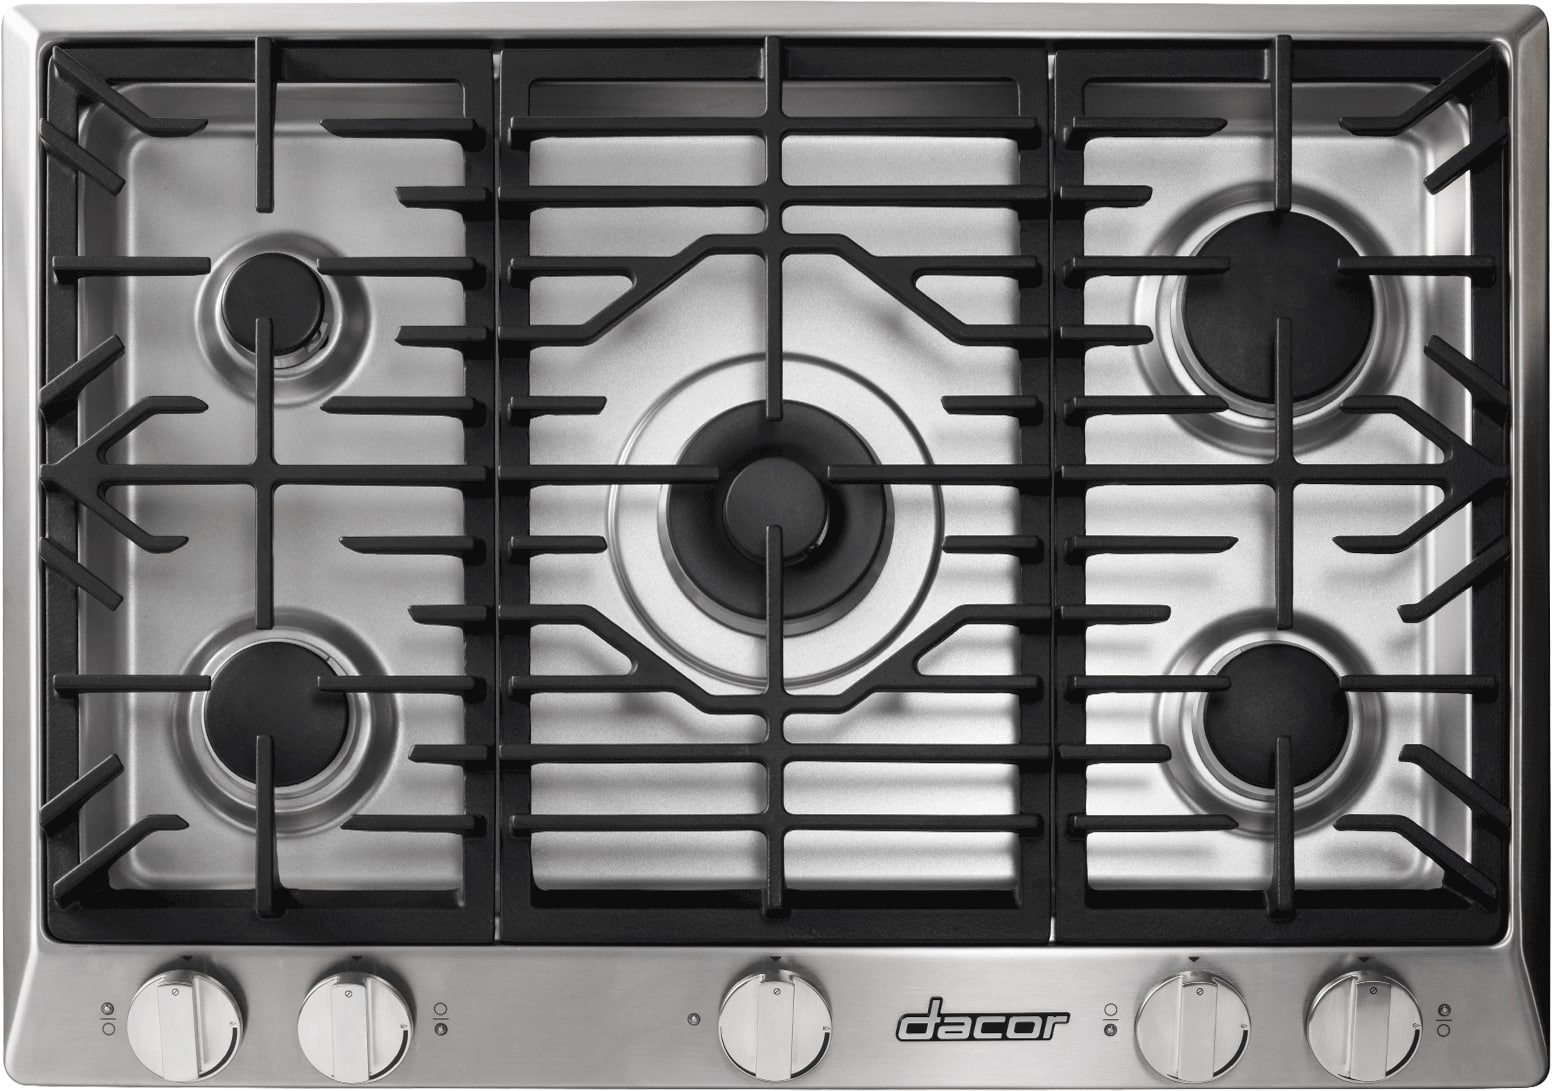 dacor rnct305gsng 30 inch gas cooktop with 5 sealed burners simmersear burner w melting feature continuous grates permaflame ignition